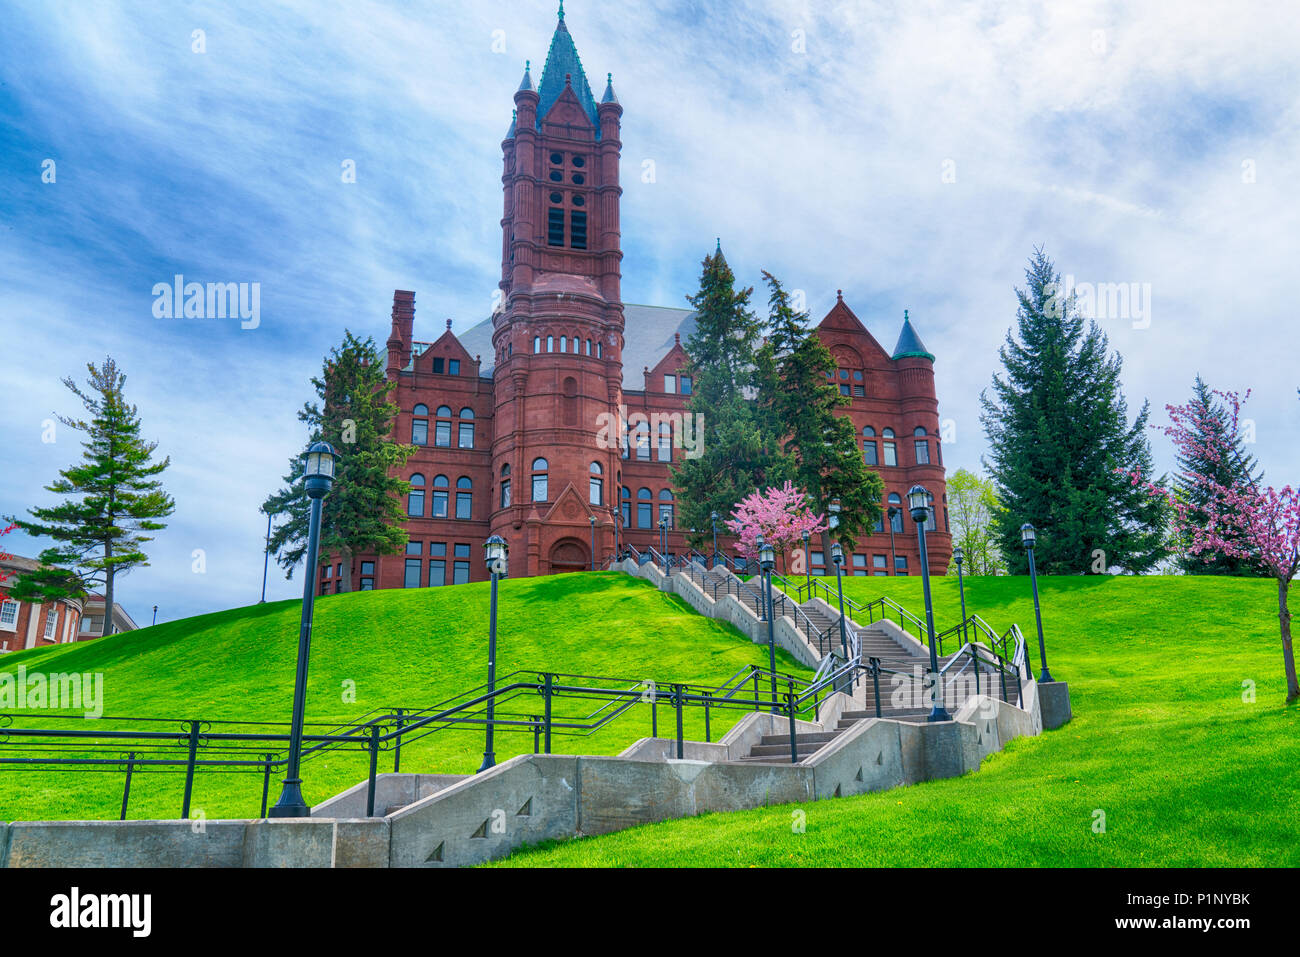 SYRACUSE, NY - MAY 14, 2018: Historic College of Visual and Performing  Arts Building at Syracuse University, New York - Stock Image